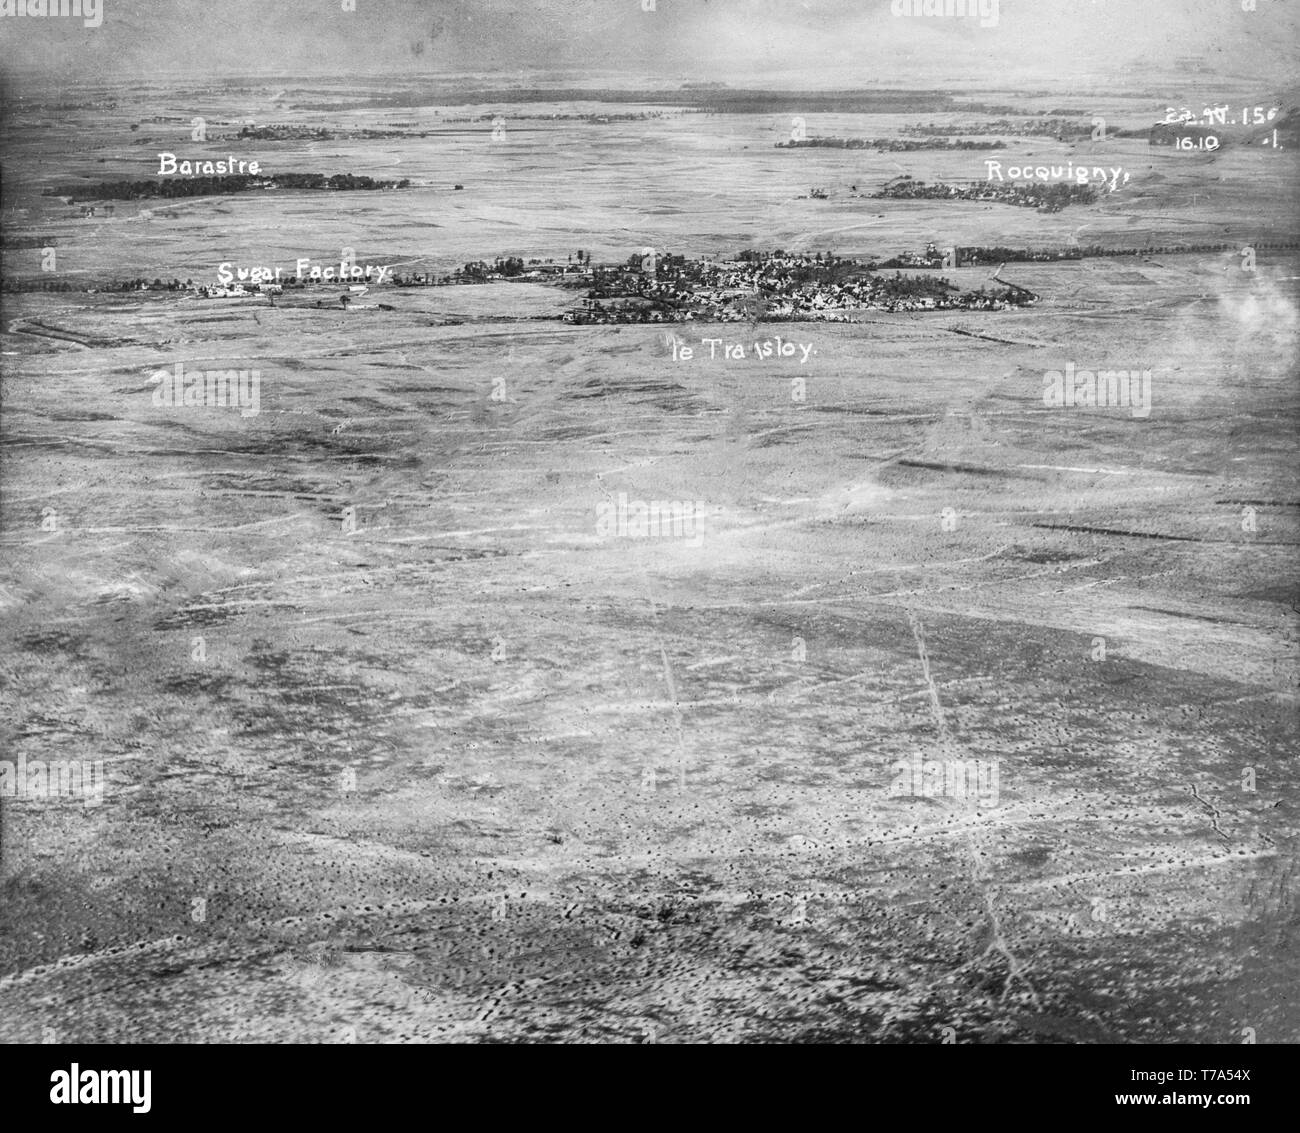 An aerial black and white photograph taken during World War One, showing the effects of bombing by the British Royal Air Force on the small villages of Barastre and Rocquigny in Northern France. - Stock Image